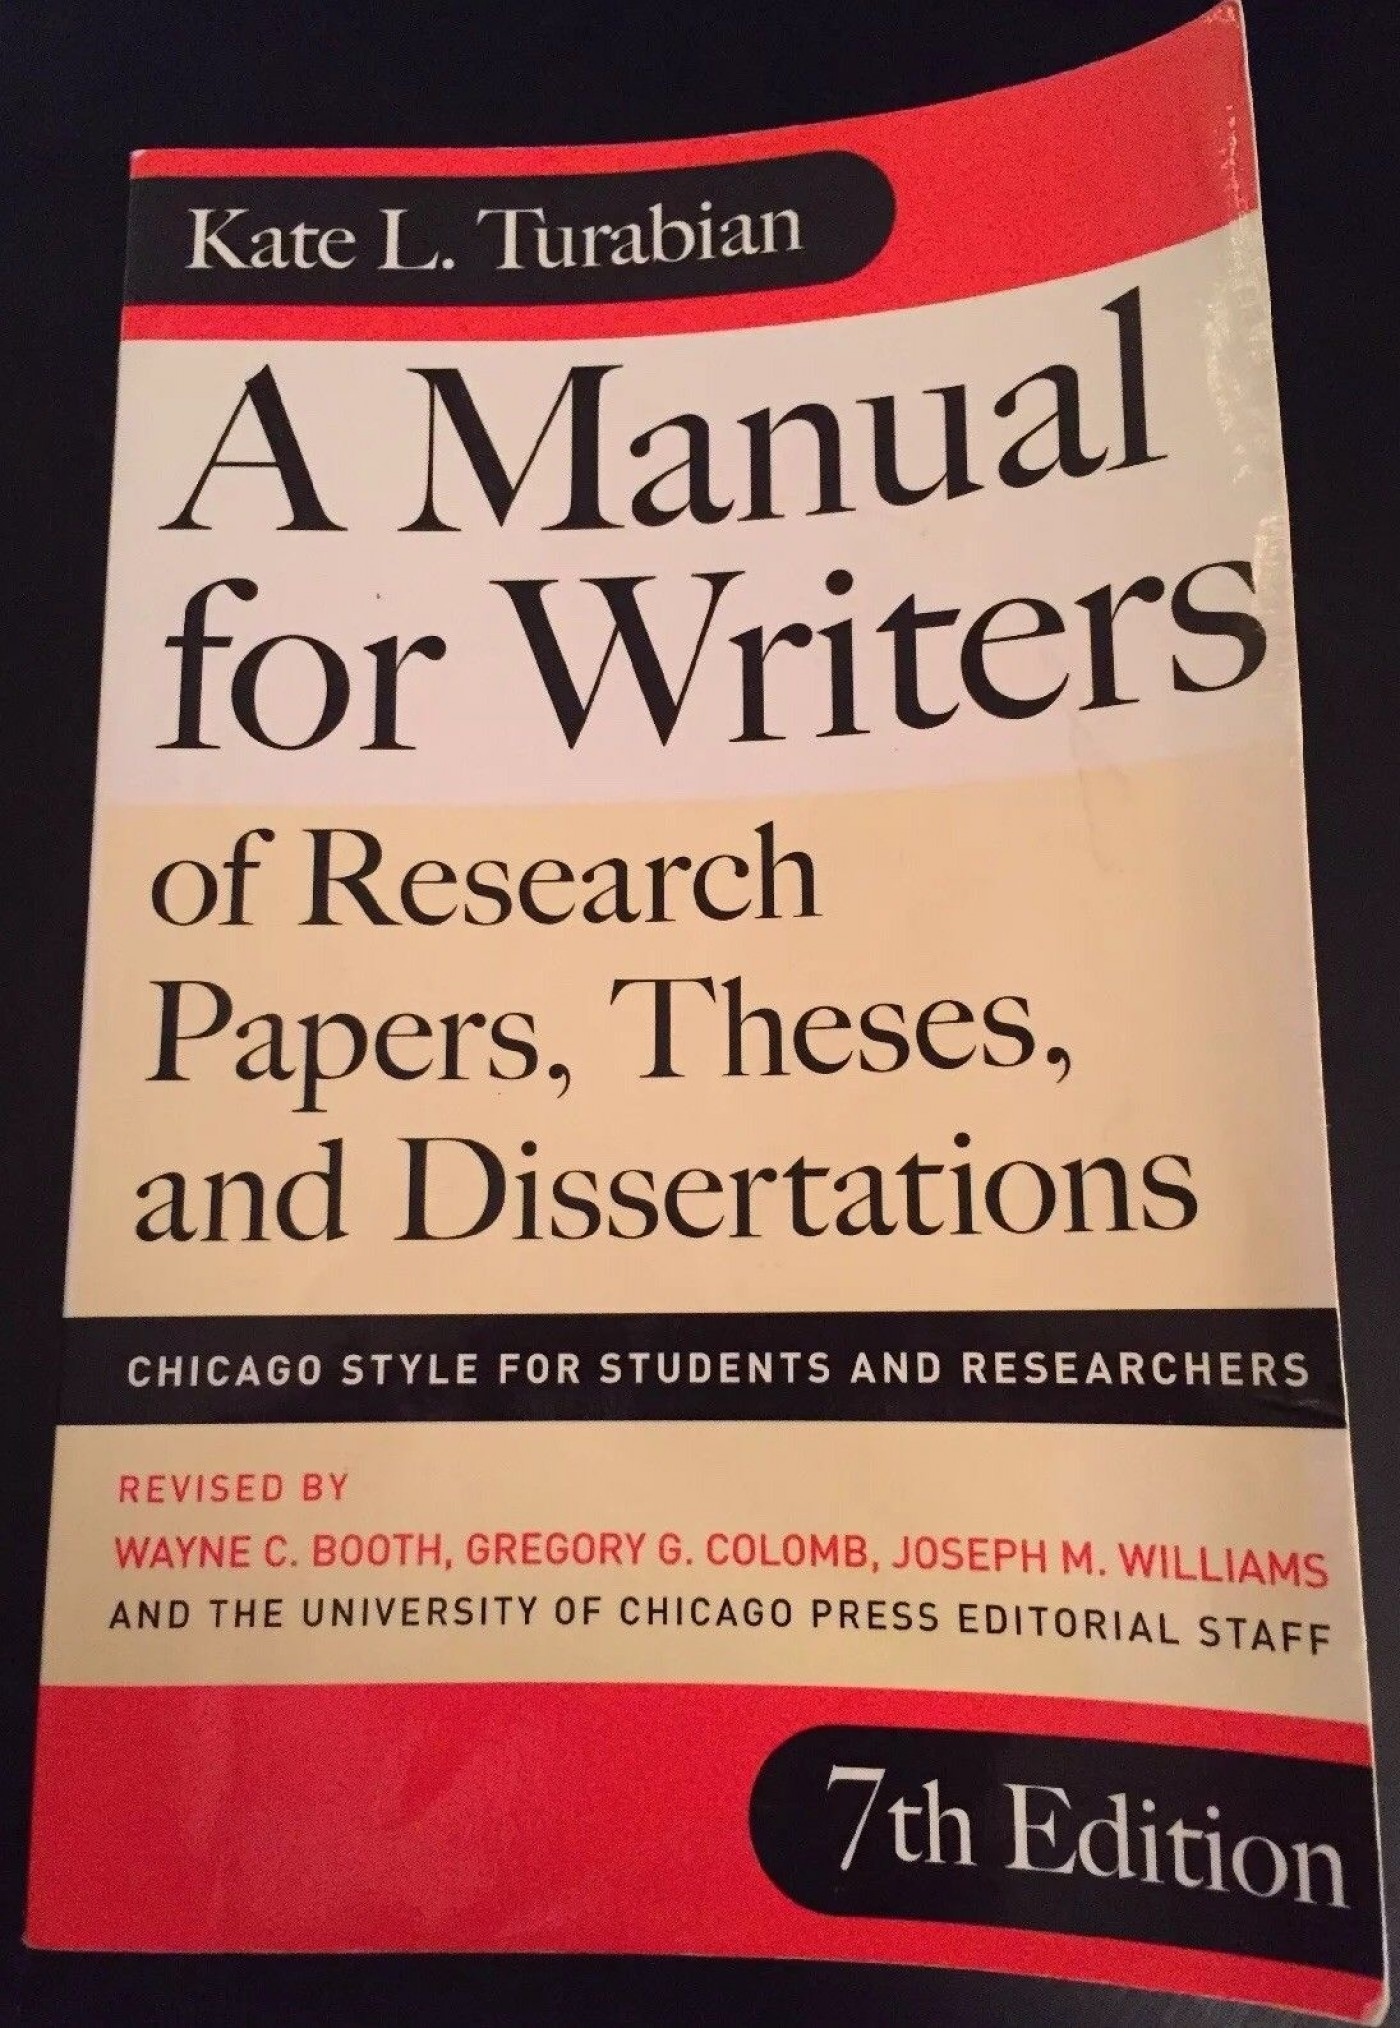 018 Research Paper Manual For Writers Of Papers Theses And Dissertations S Magnificent A Amazon 9th Edition Pdf 8th 13 1400